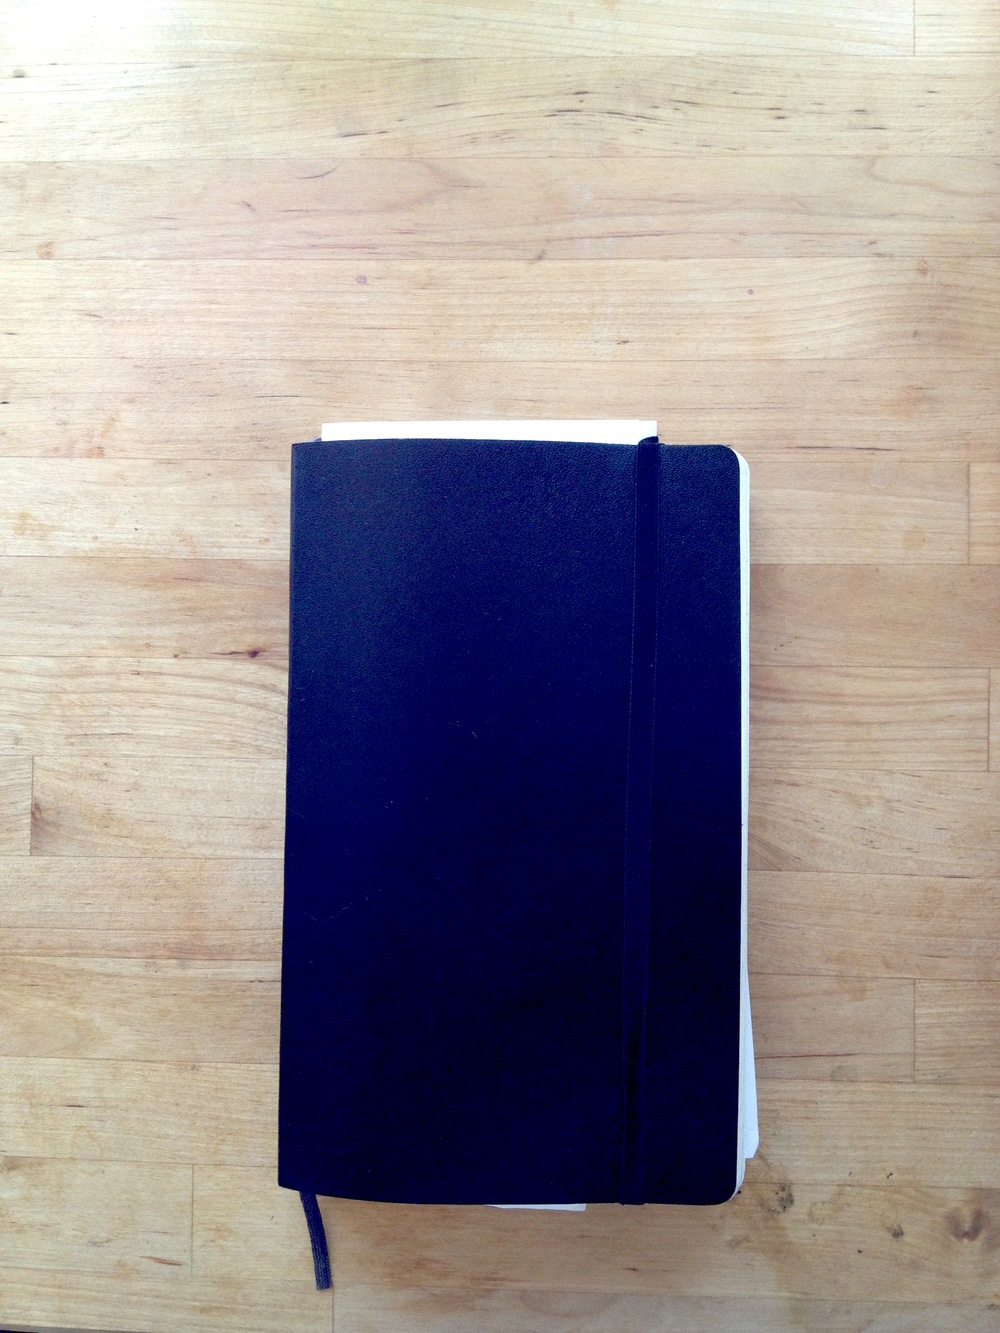 My moleskin day planner.  i would be lost without it.  Bonus notebook space in it as well.